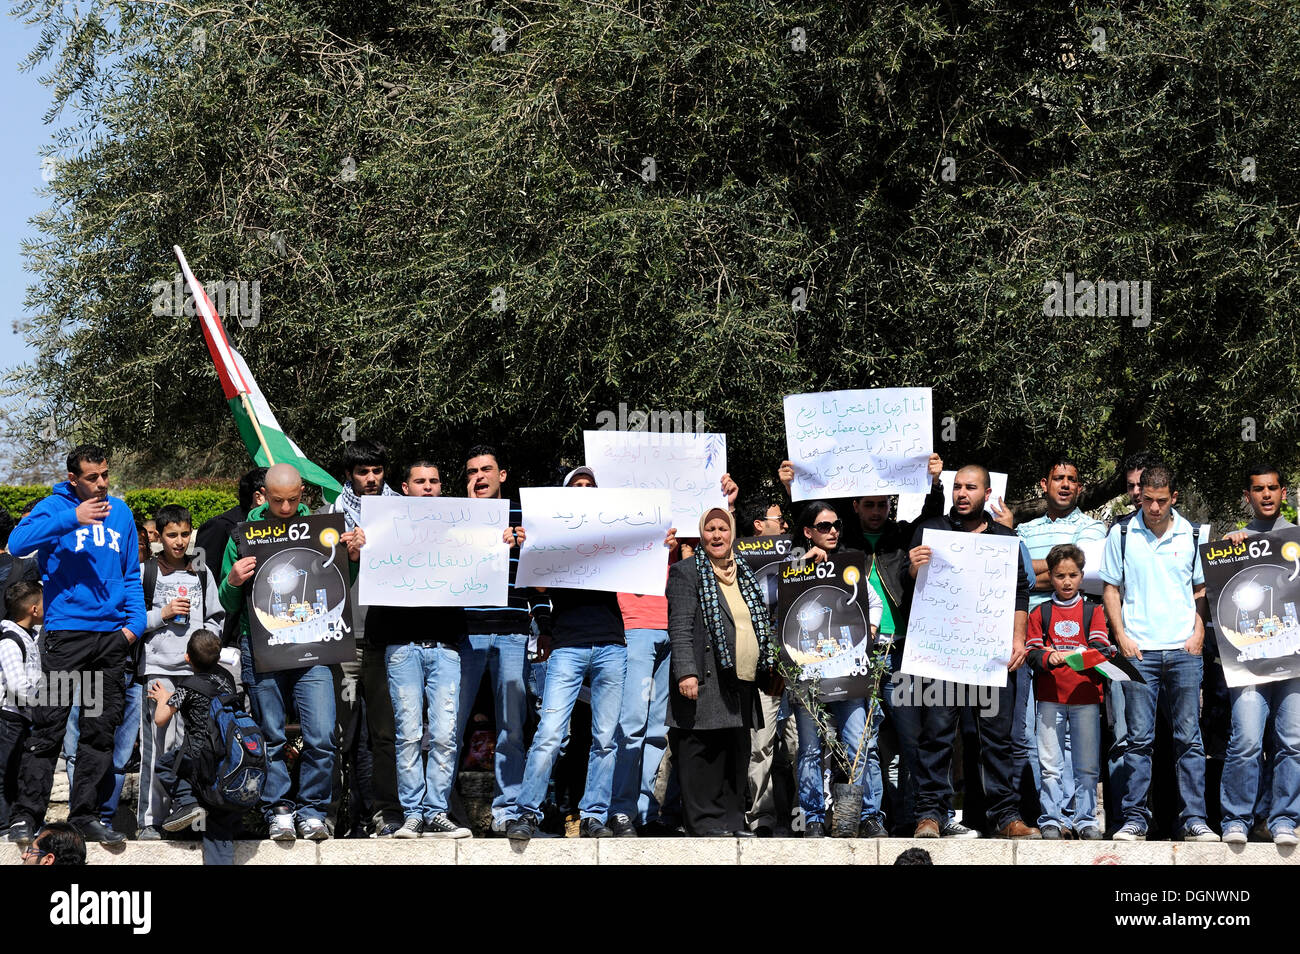 Palestinians demonstrating peacefully with placards and signboards on the steps outside the Damascus Gate against - Stock Image